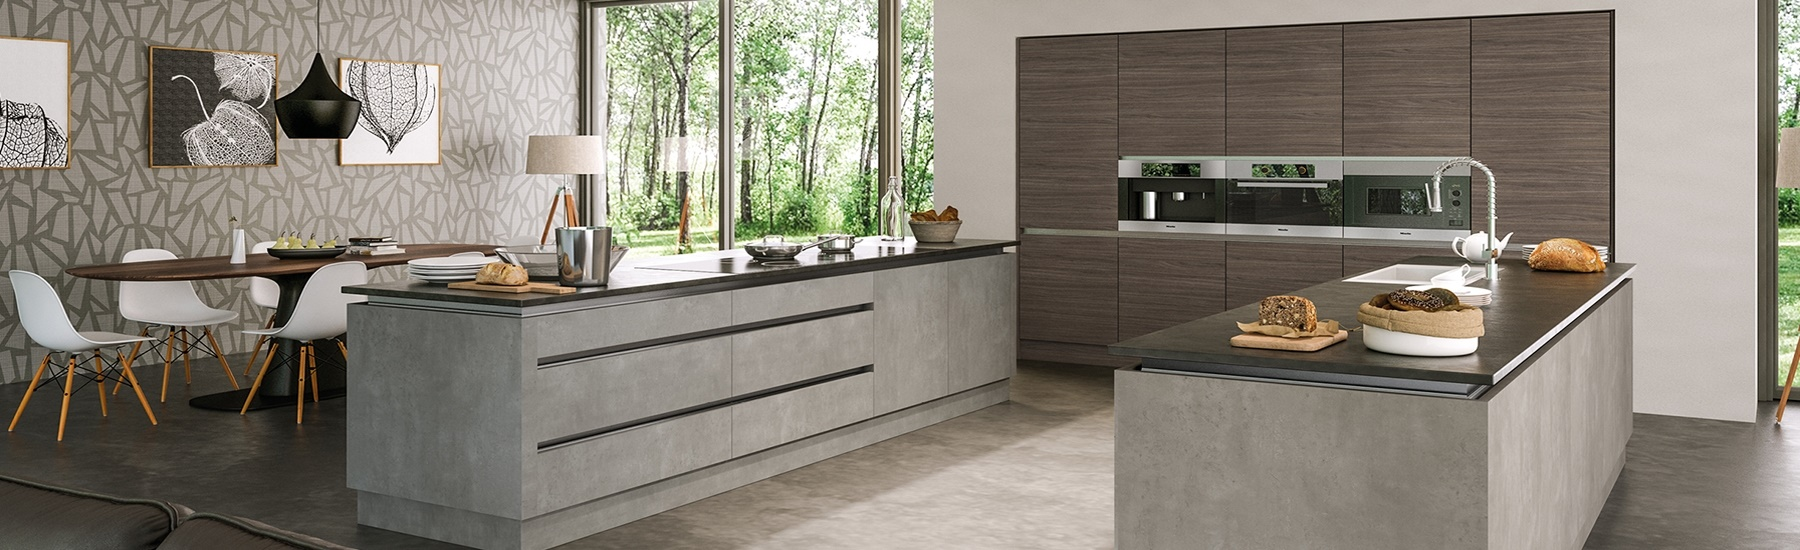 Valore-Kitchen-Heate5